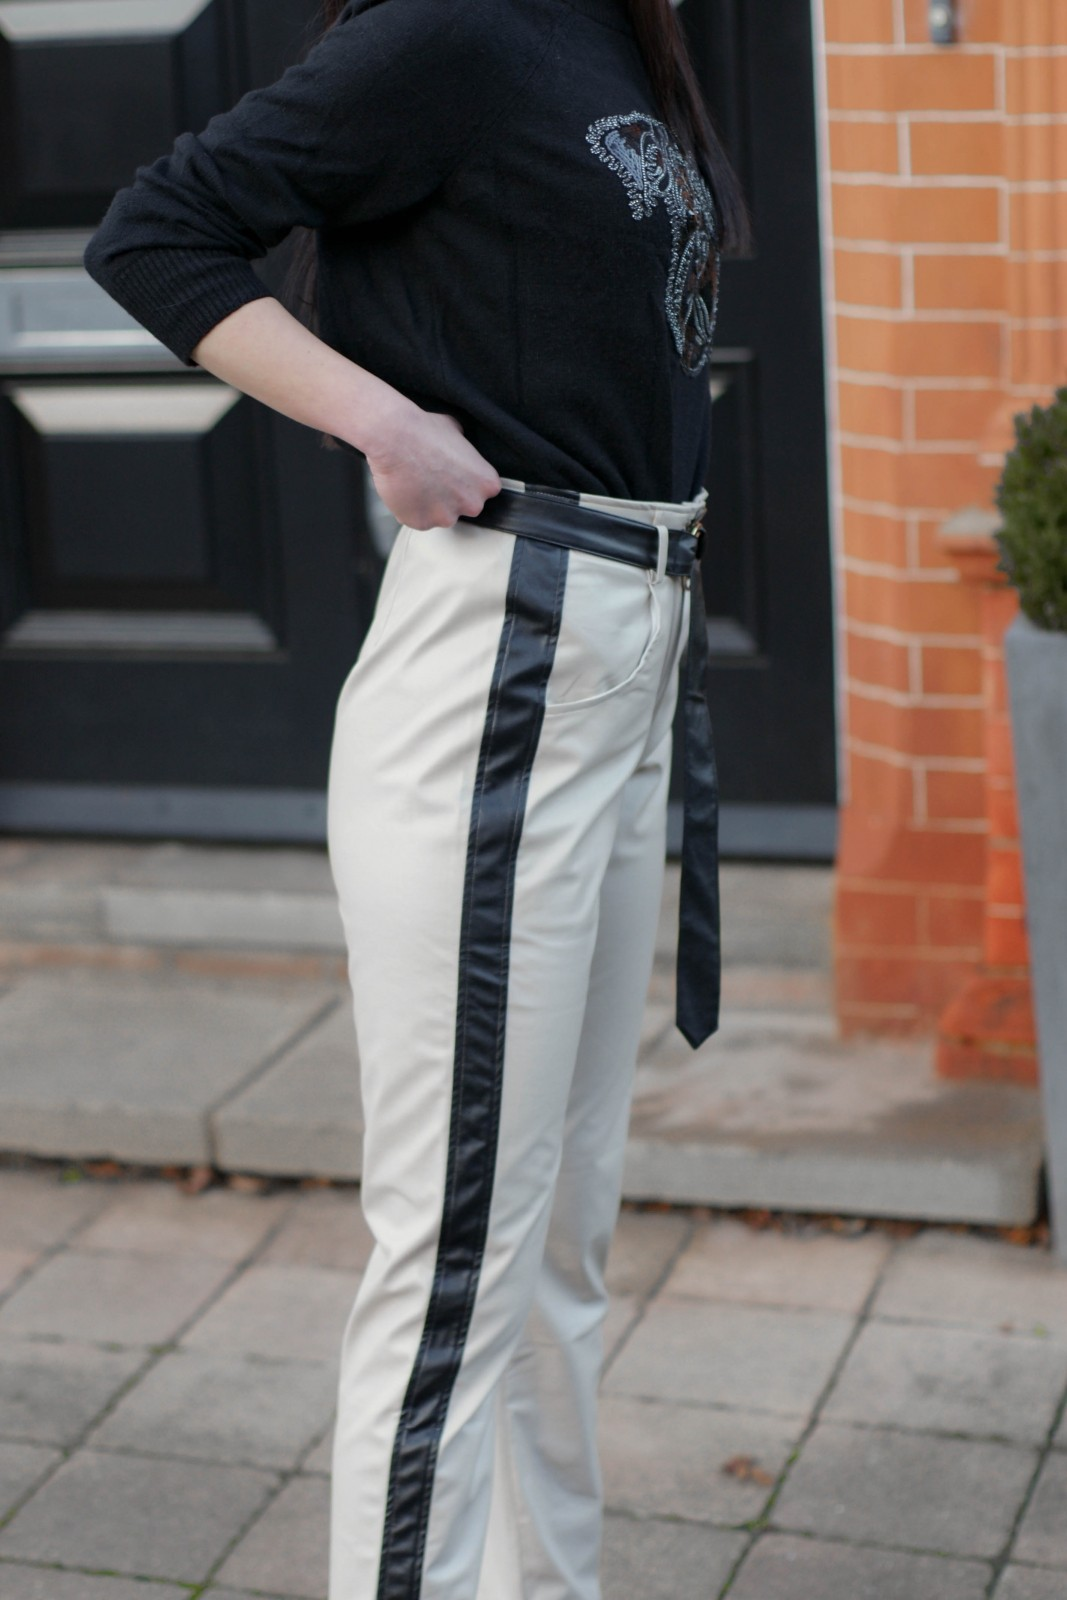 Why-Leather-Pants-Are-Still-In-Style-And-You-Should-Get-A-Pair-10-of-15